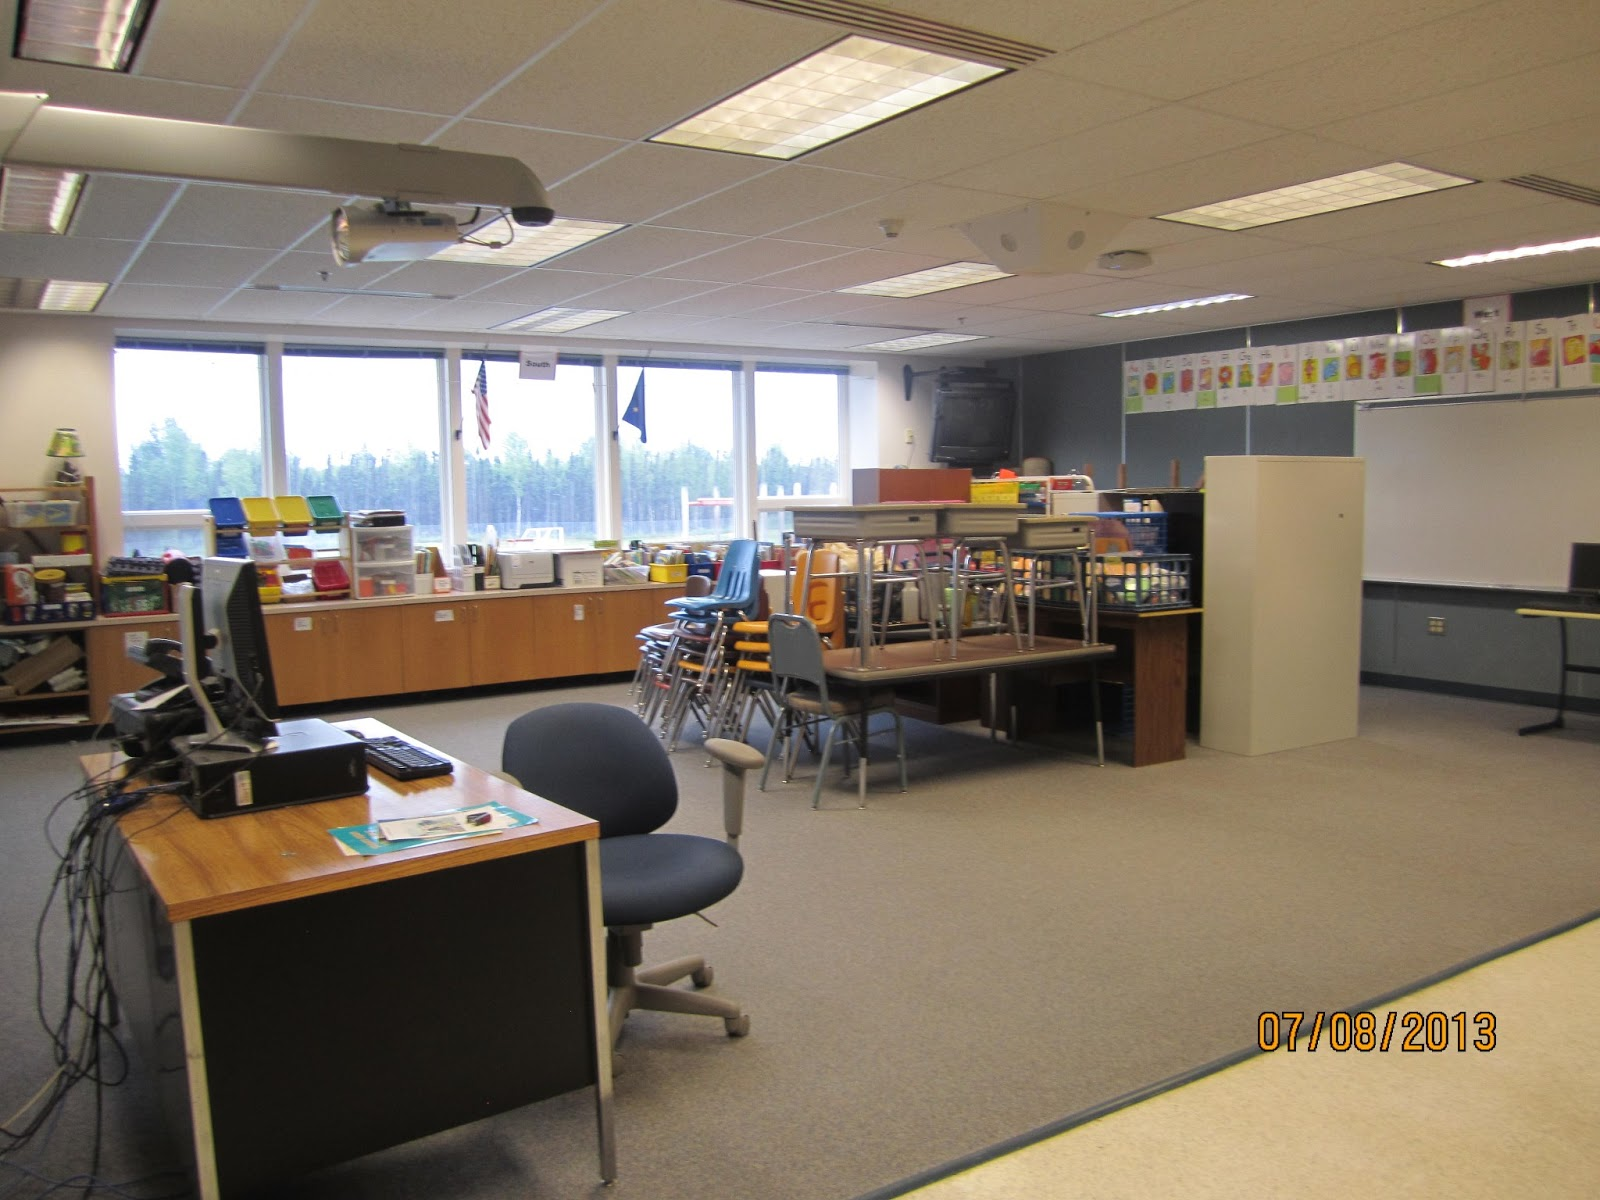 Classroom Design For Students With Disabilities ~ Educating children with disabilities setting up my